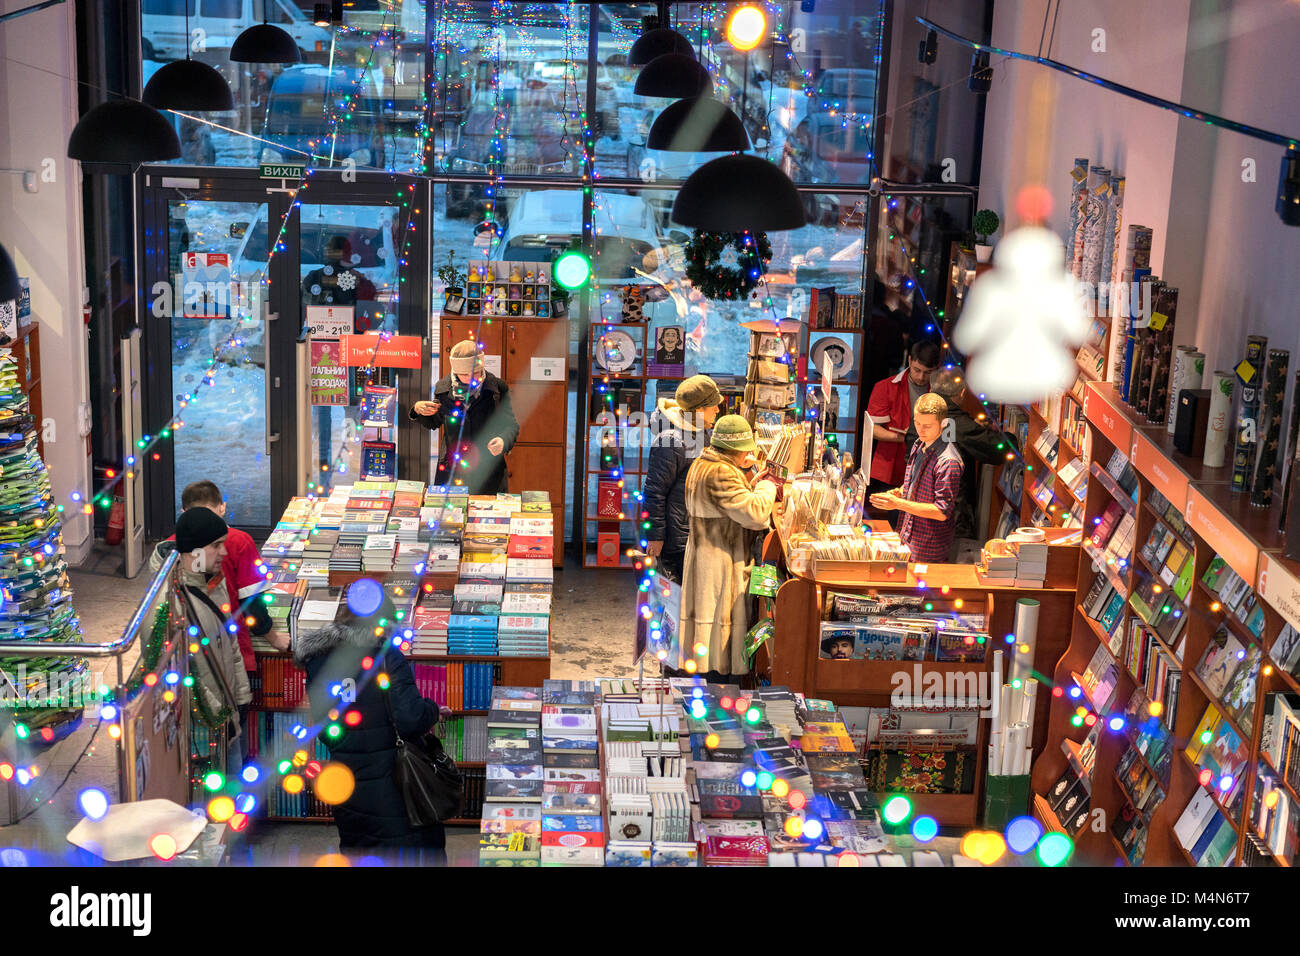 Blur image of book store on shelf at shopping center for background usage. - Stock Image